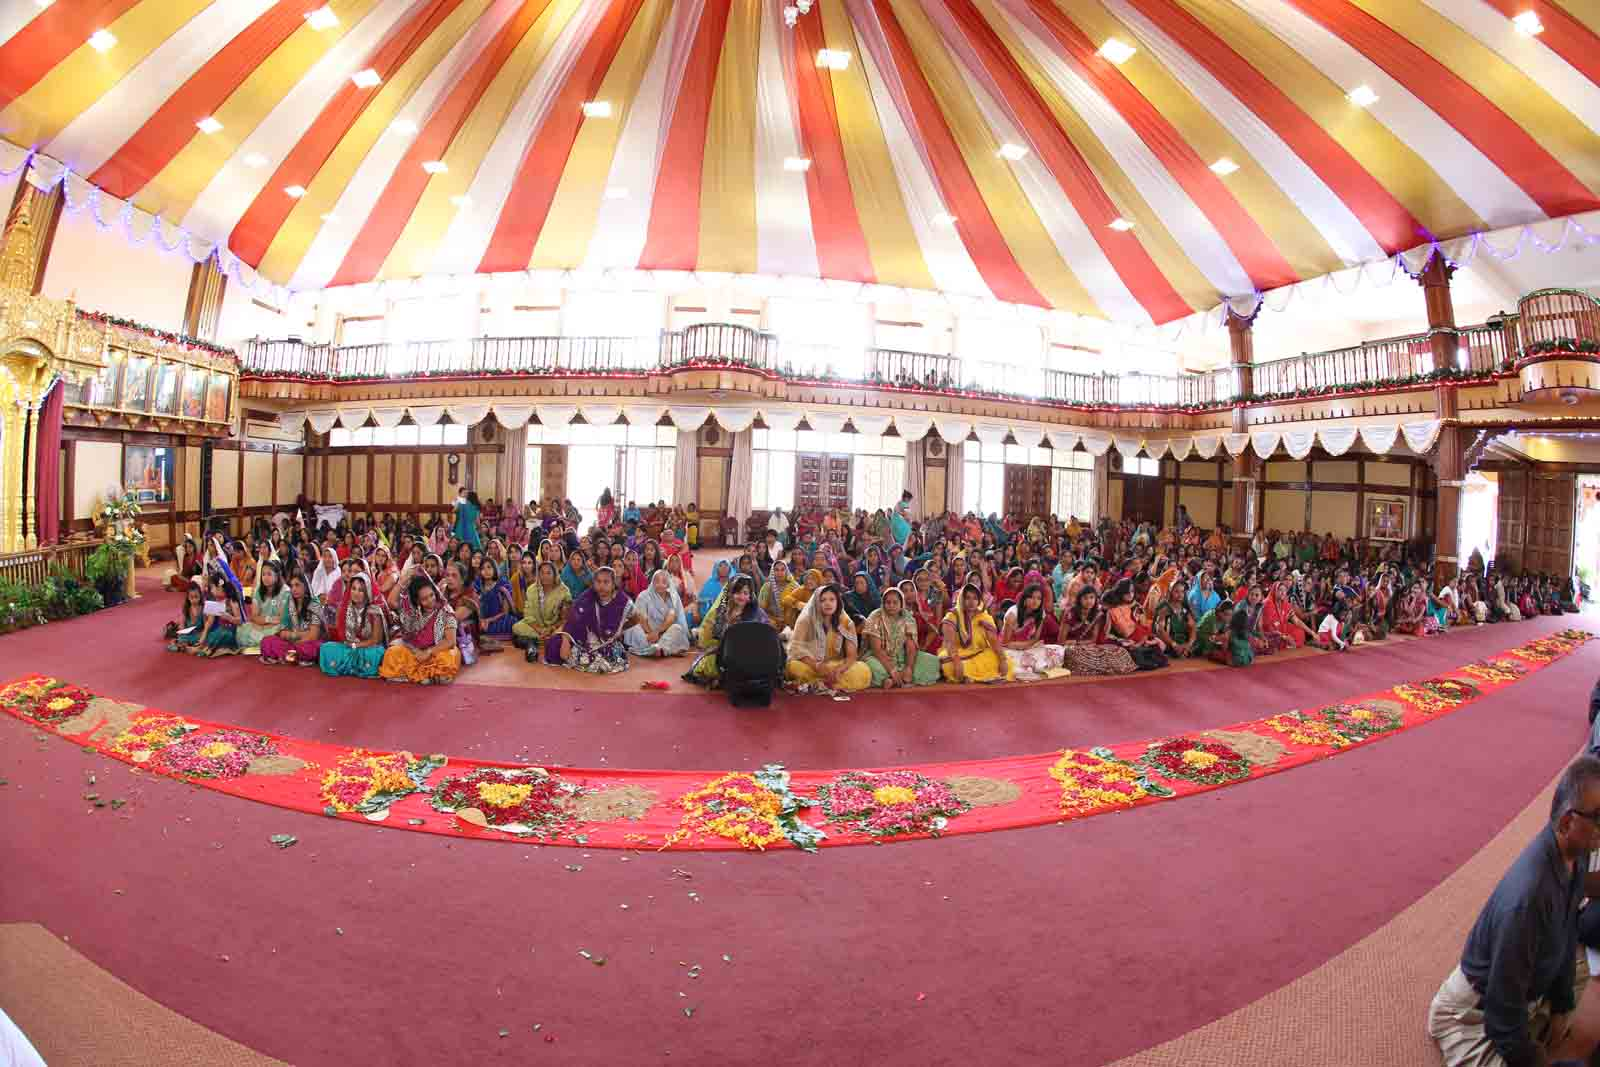 Devotees listening to Acharya Swamishree's divine discourses